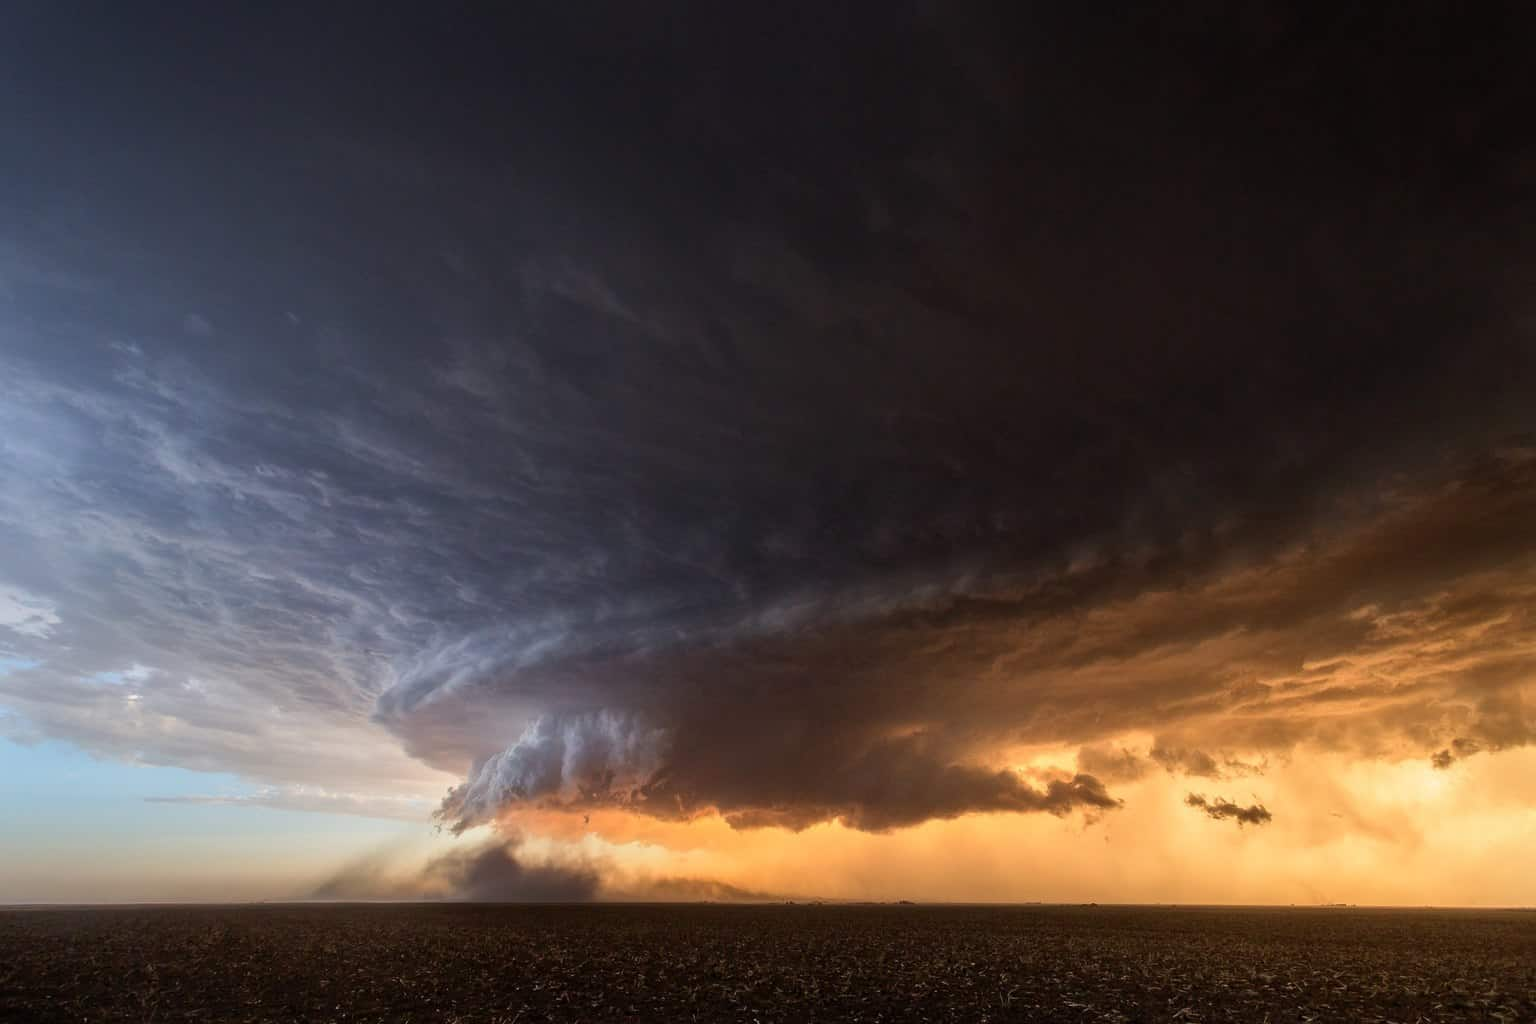 A photo I never edited from that stunning supercell near Booker, Texas back on June 3rd, 2013. Still can't believe my buddy Andy Hoeland and I flew into Denver and drove to Kansas, but ended up chasing into Texas and were blessed to see this storm. Probably the best supercell I've ever seen in person. — with Andy Hoeland.